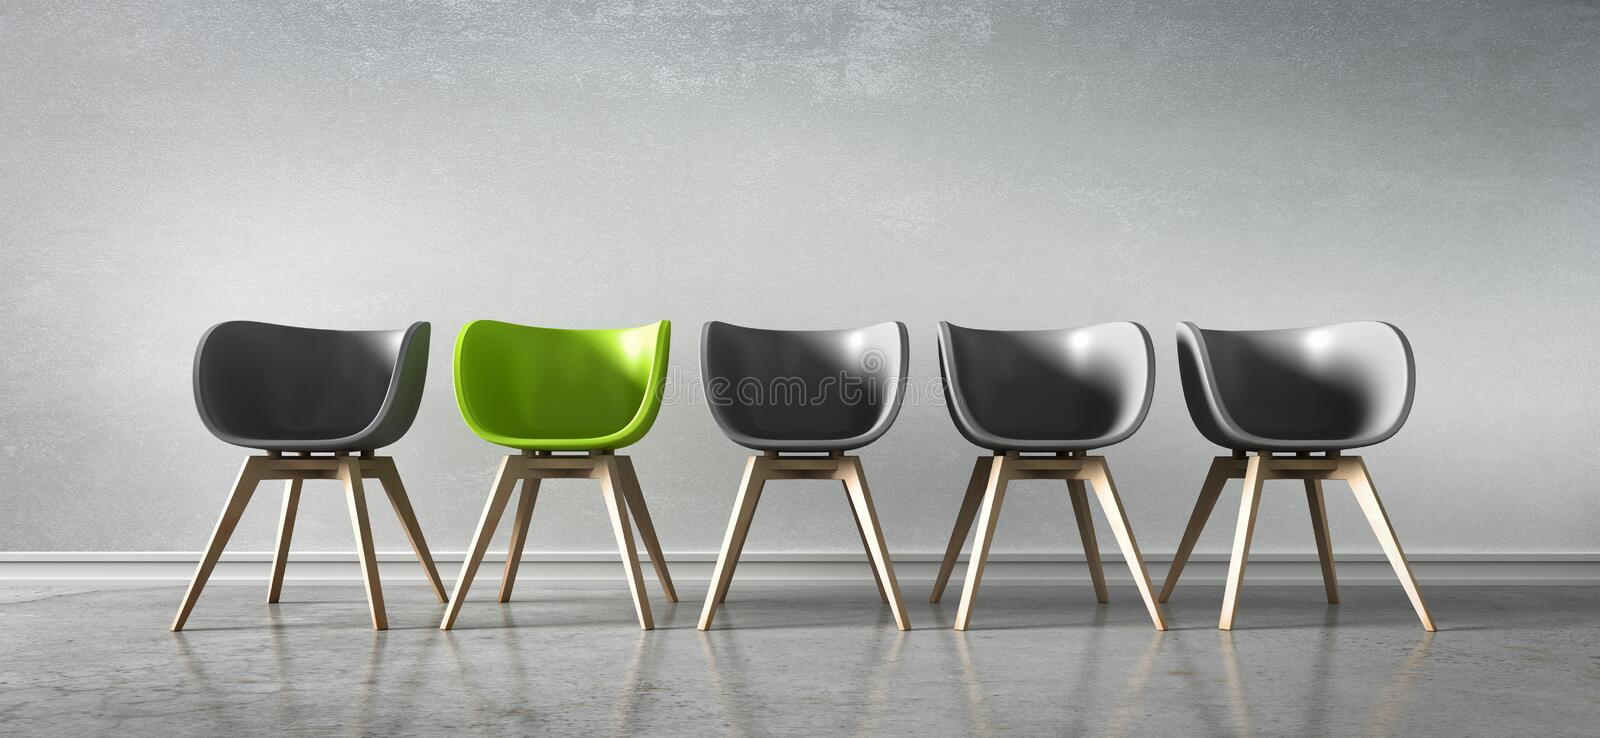 Five chairs in a row - concept discussion stock illustration